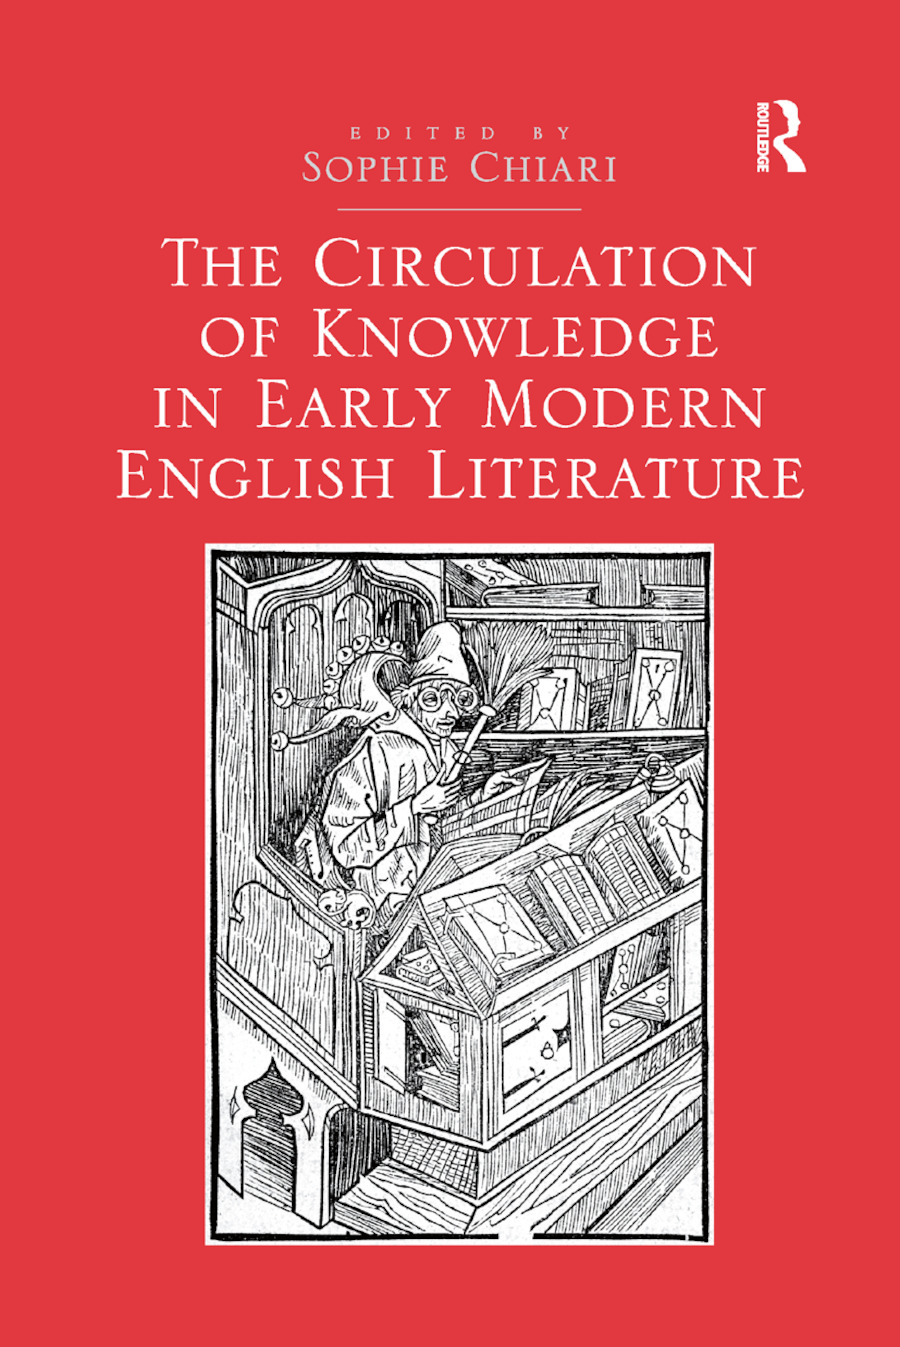 The Circulation of Knowledge in Early Modern English Literature book cover